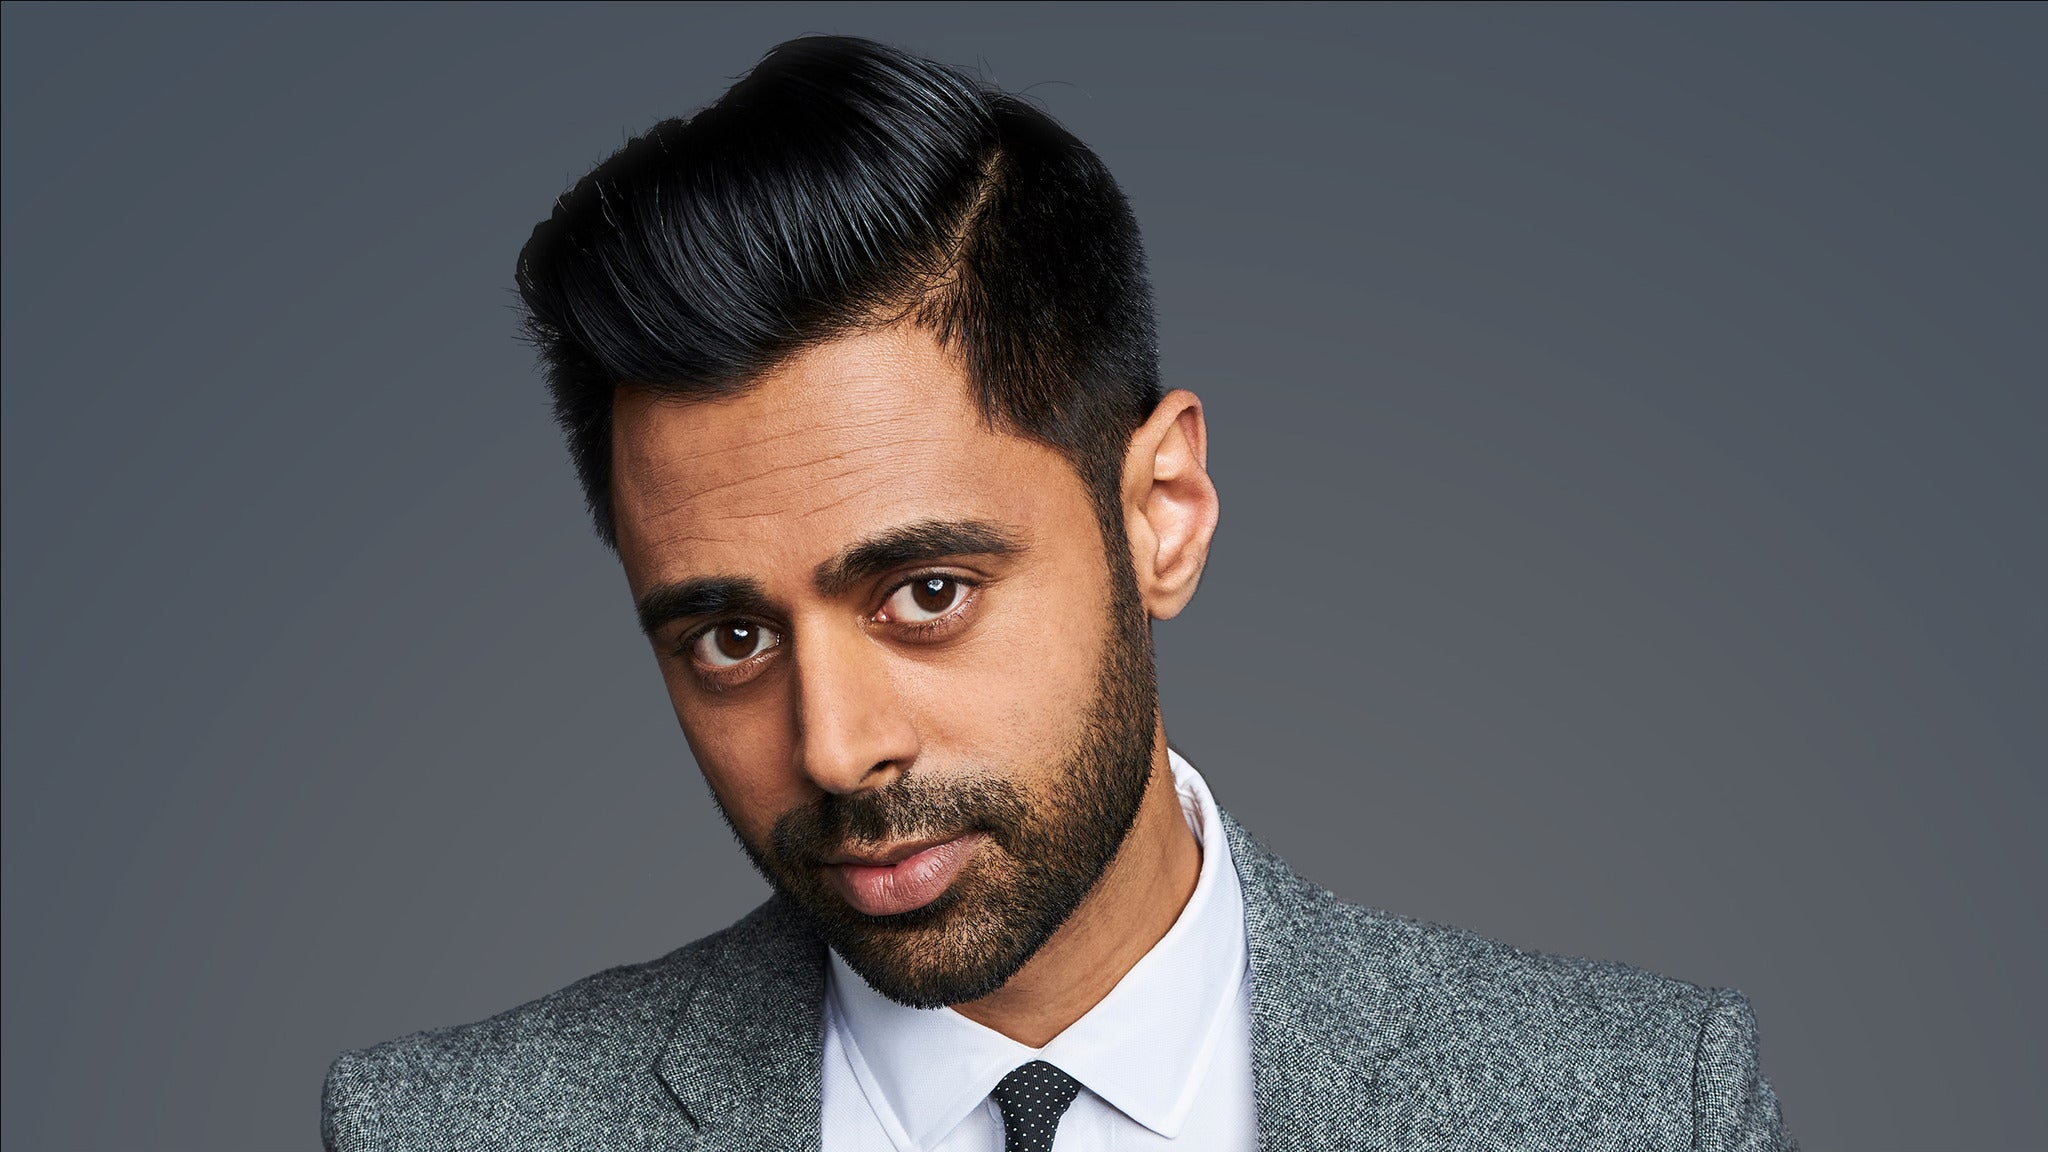 Hasan Minhaj at Sacramento Community Center Theater - Sacramento, CA 95814